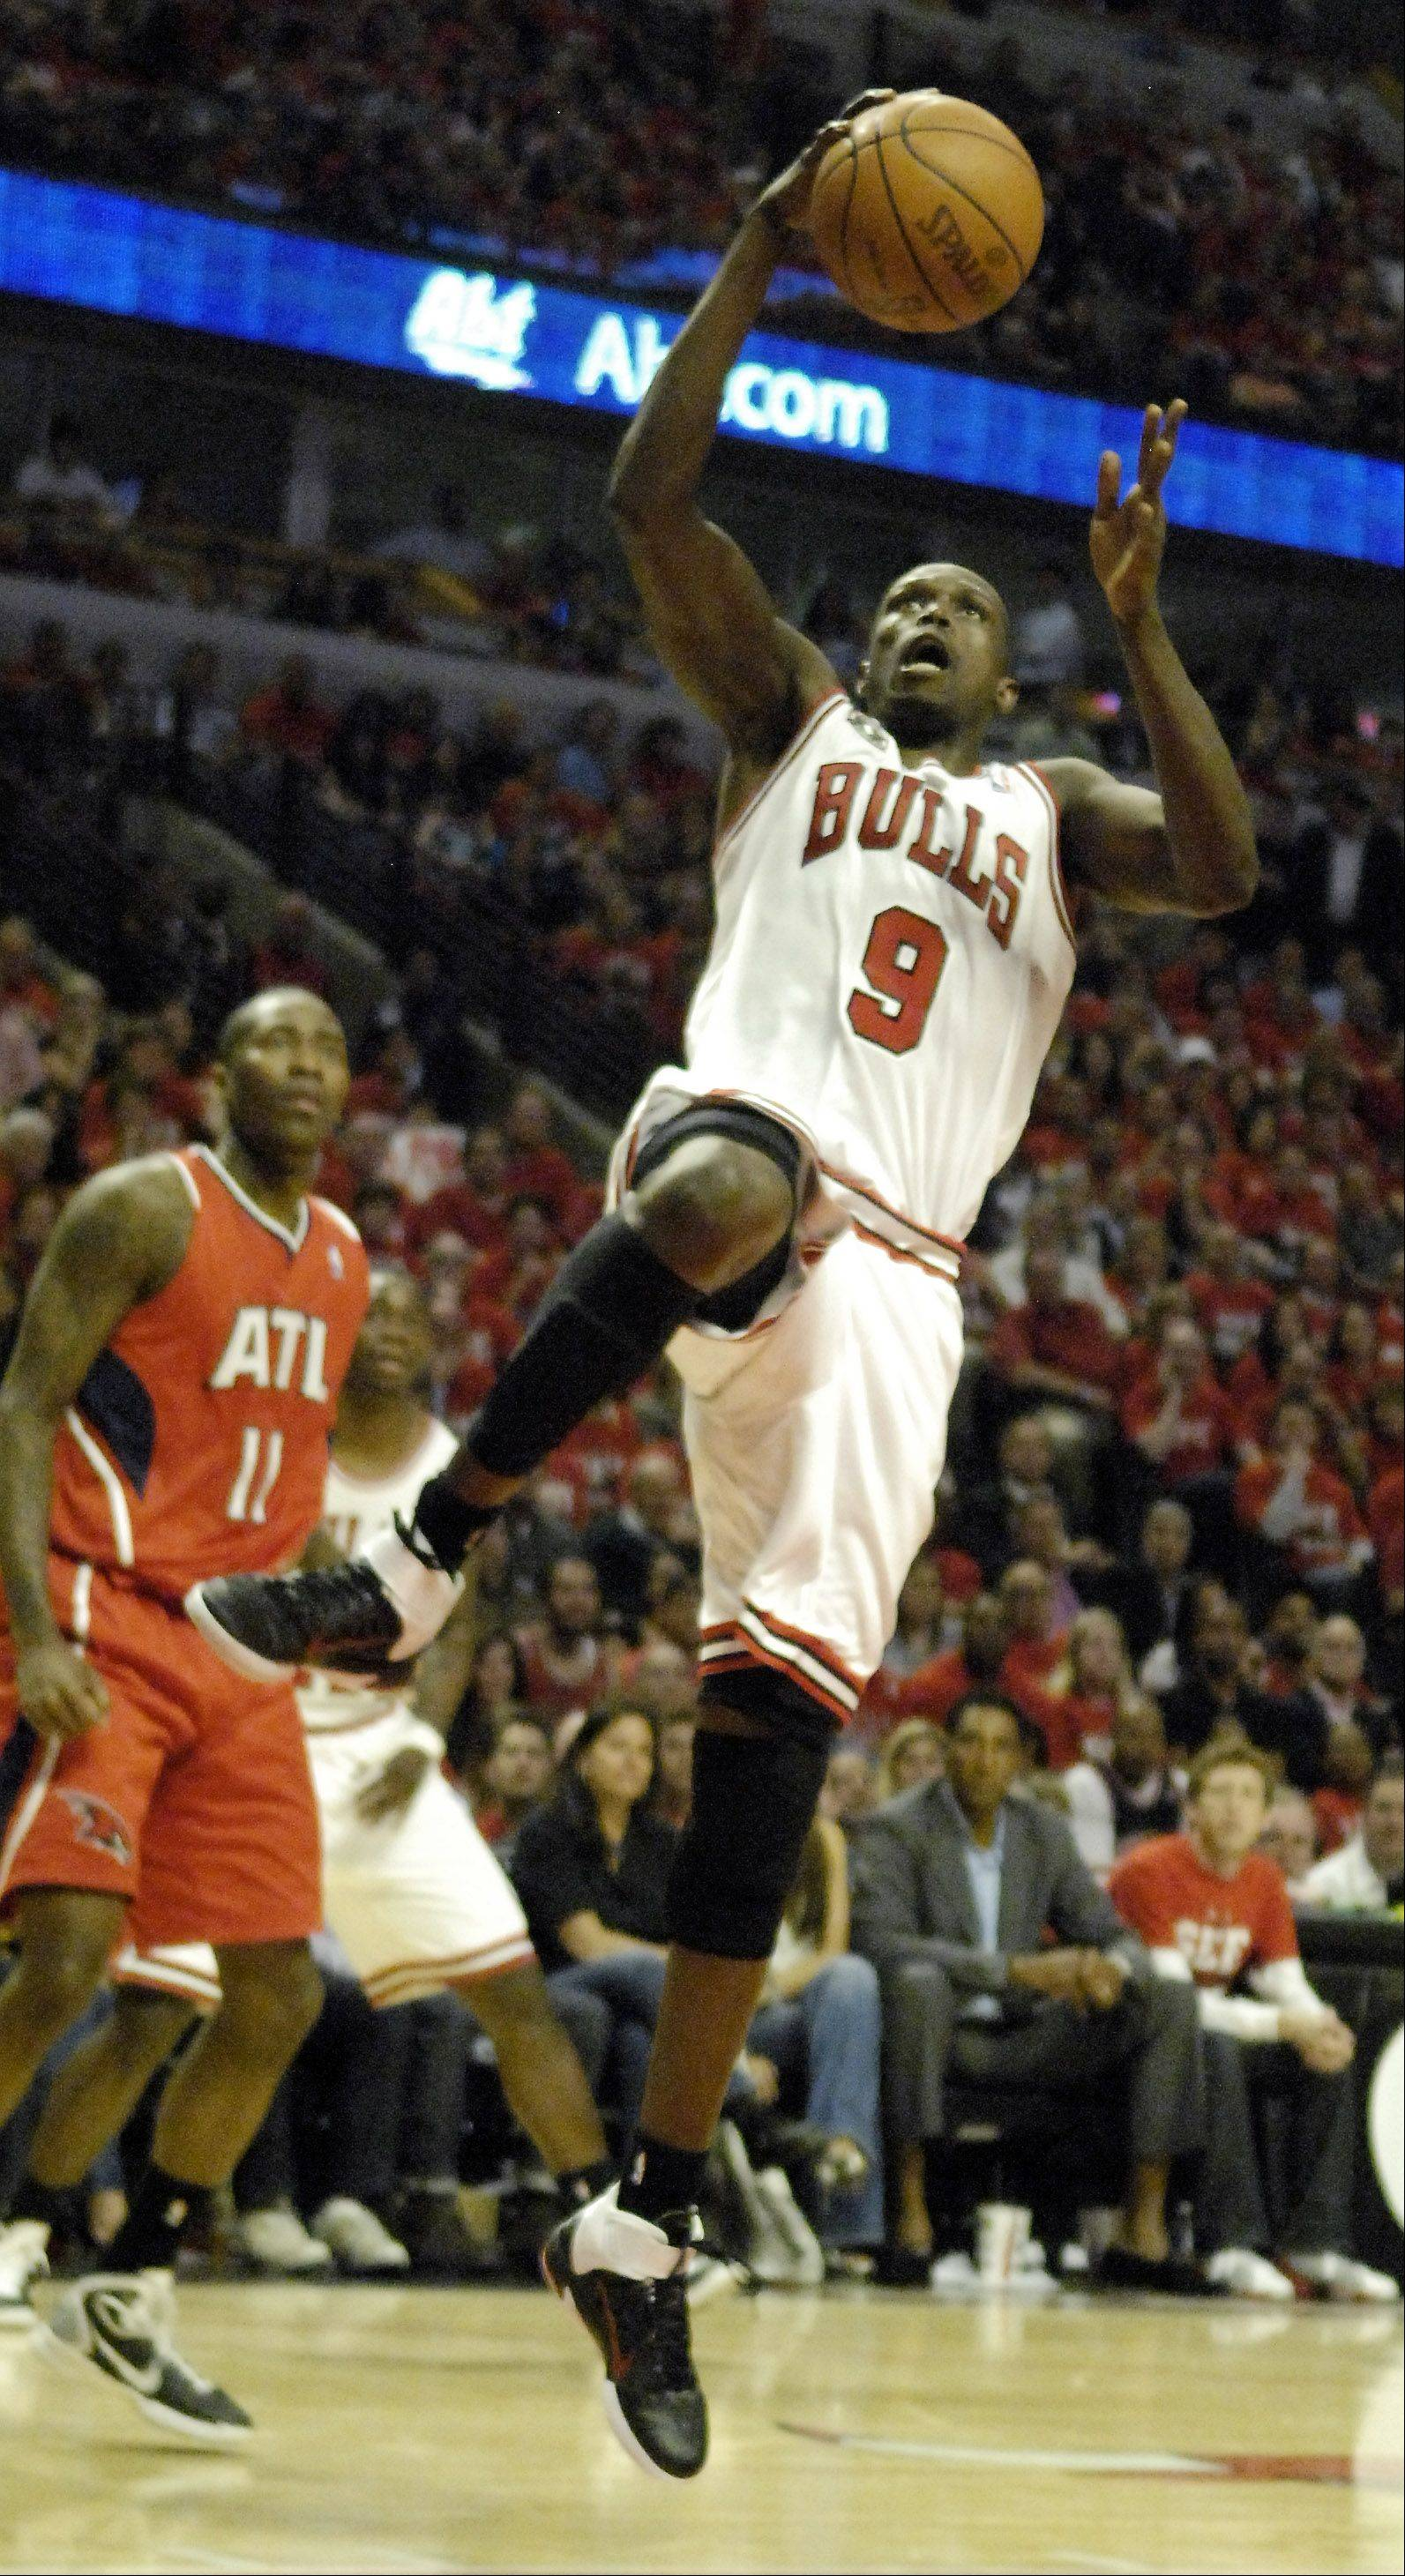 Luol Deng should be the perfect complement for a returning Derrick Rose, but the Bulls should try to lock up Deng at a more reasonable salary when his contract expires in 2014.